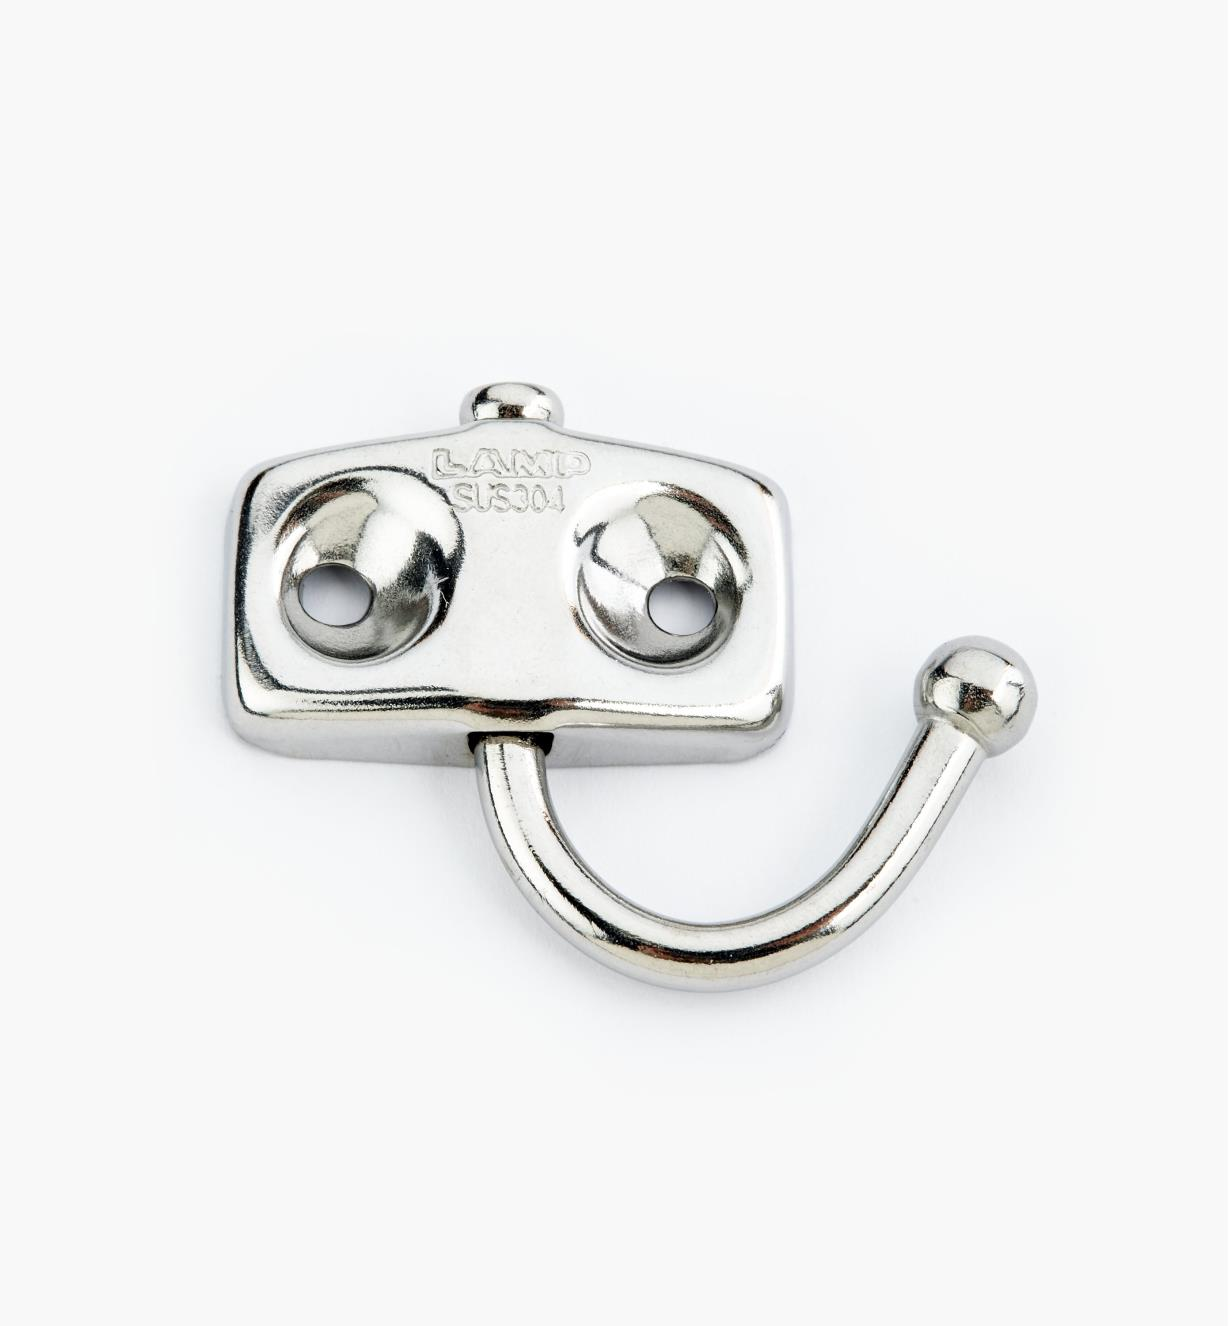 "00H2710 - 1 3/8"" Swivel Hook"